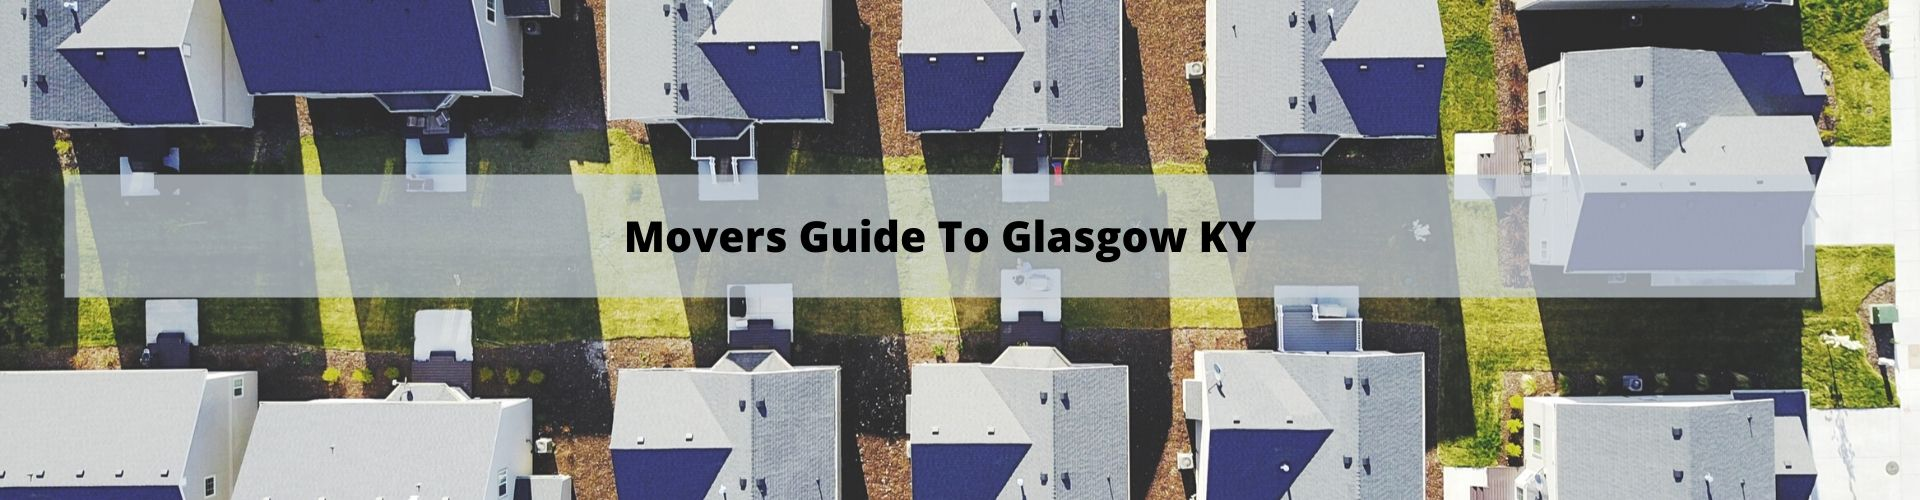 Movers Guide to Glasgow KY